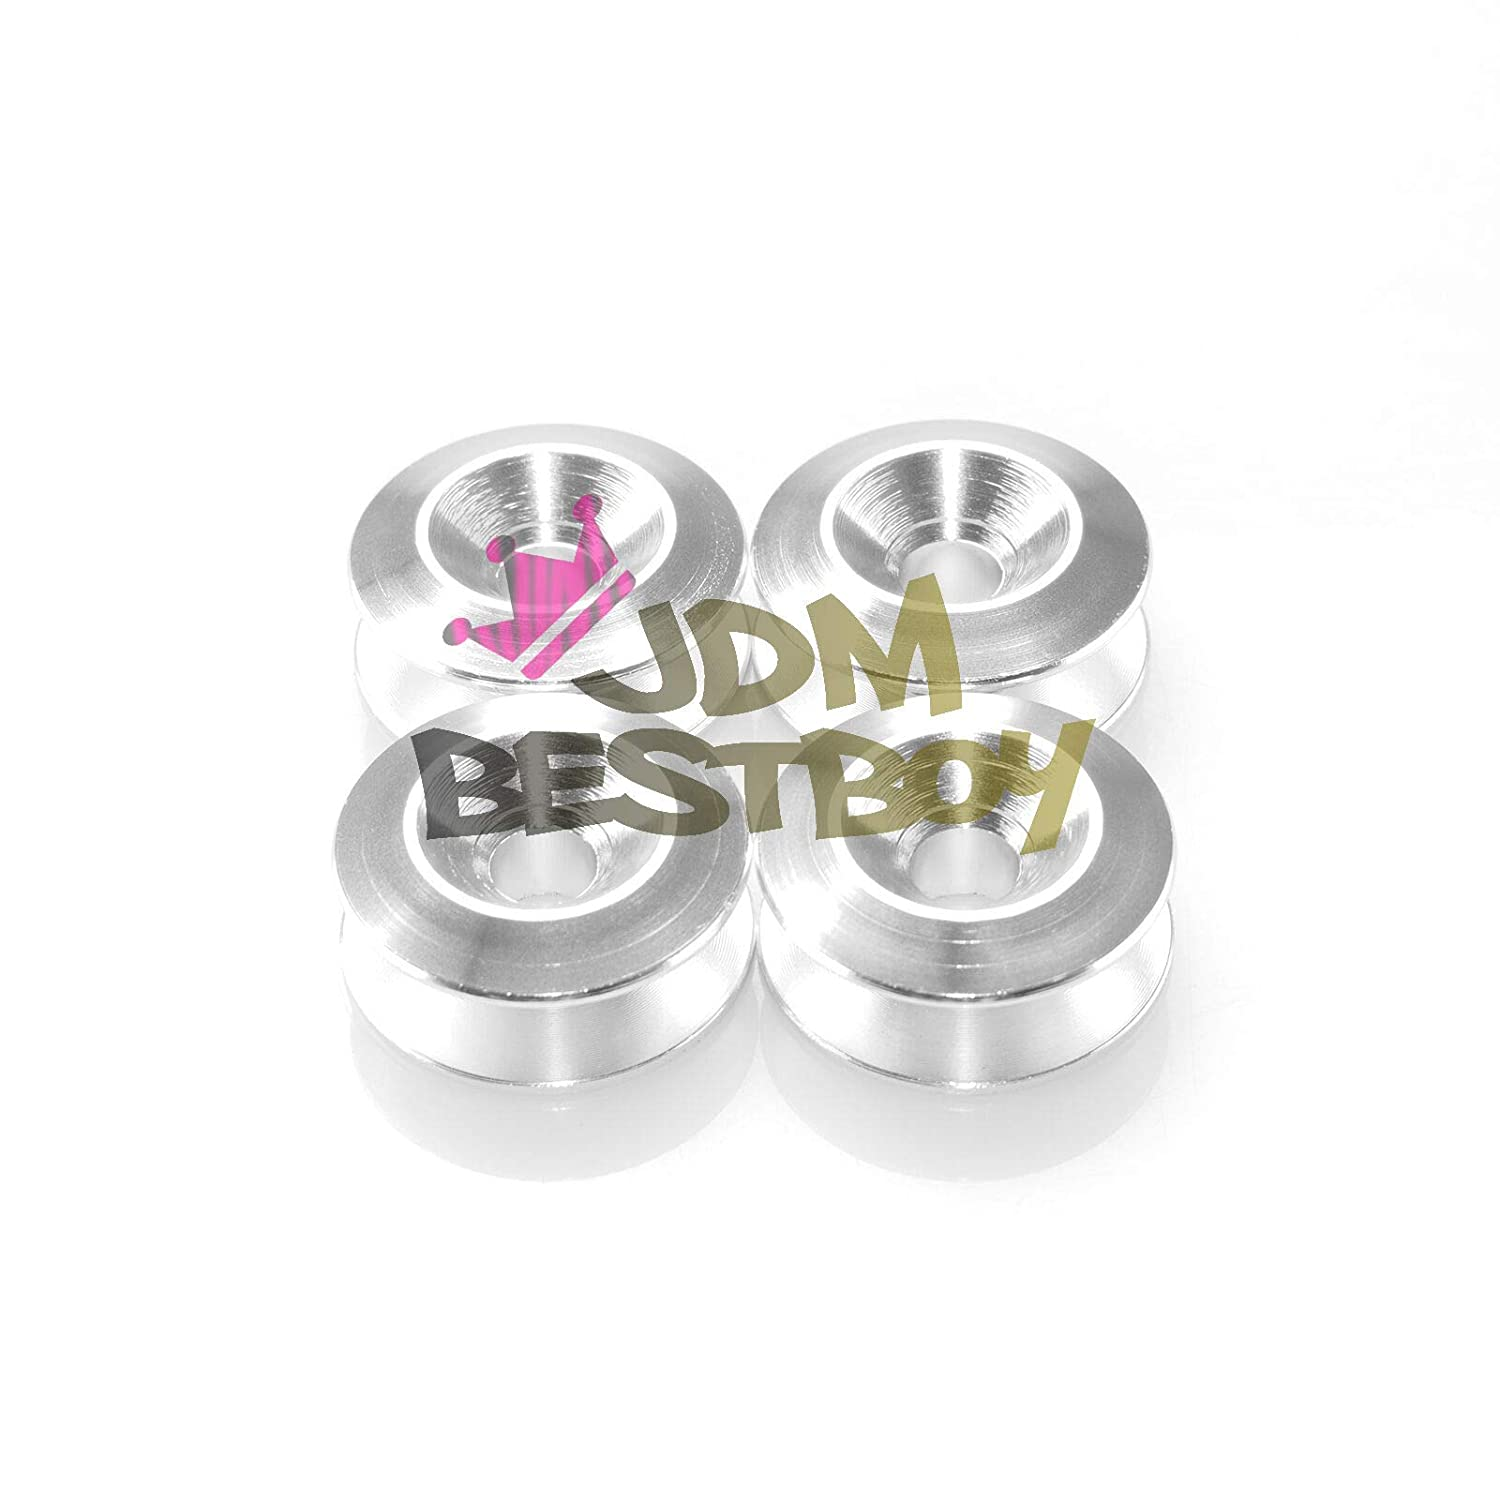 JDMBESTBOY Blue Spiked Quick Release Fasteners for Car Bumpers Trunk Fender Hatch Lids Kit